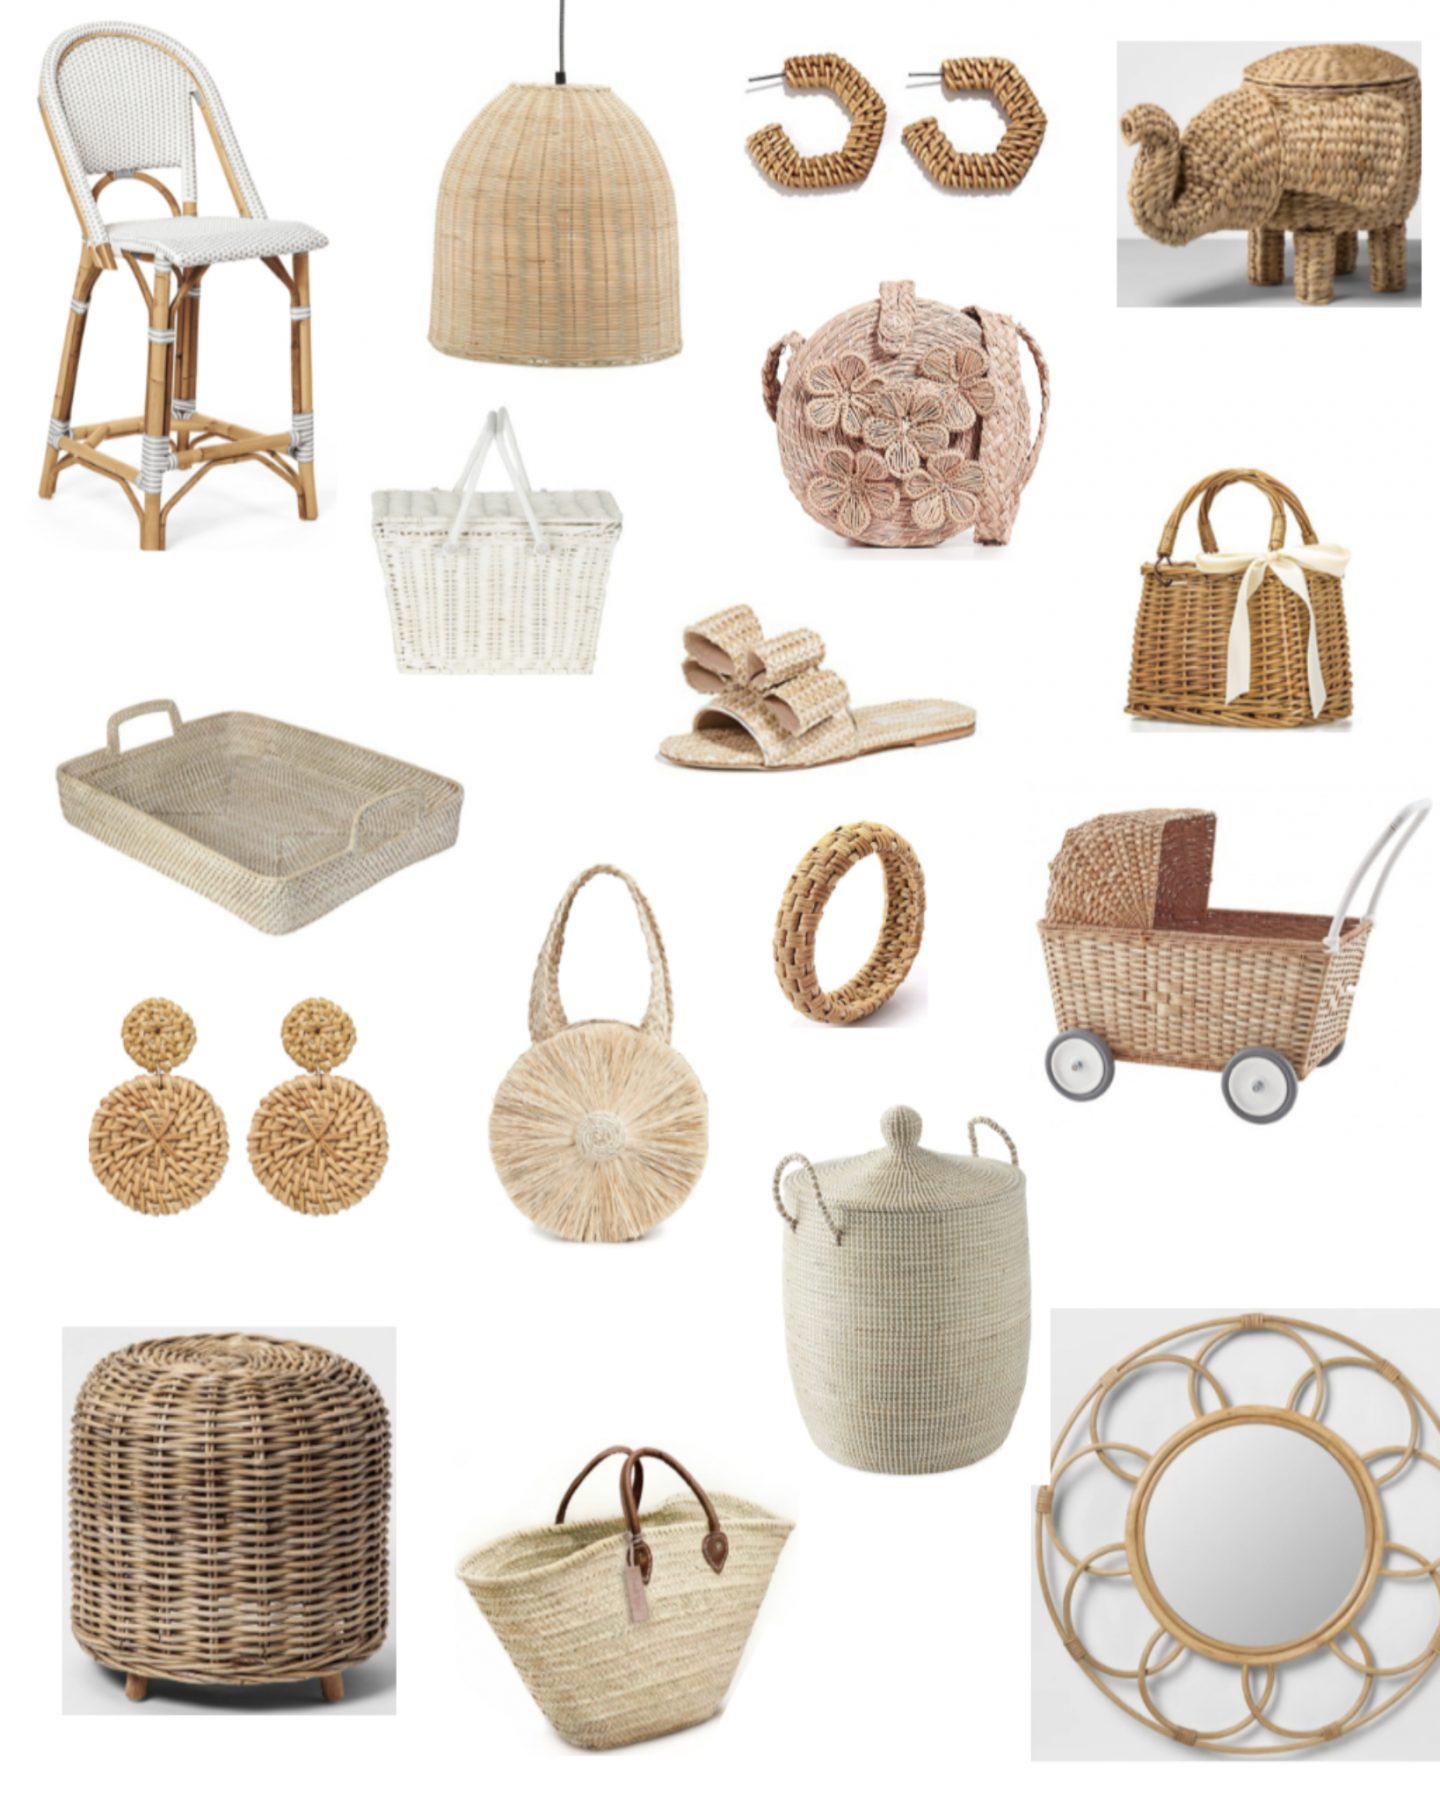 Rattan Chair, Rattan Earrings, Wicker bag, wicker purse, rattan mirror , Straw bags, Wicker earrings, Straw elephant, wicker baby carriage, wicker pram